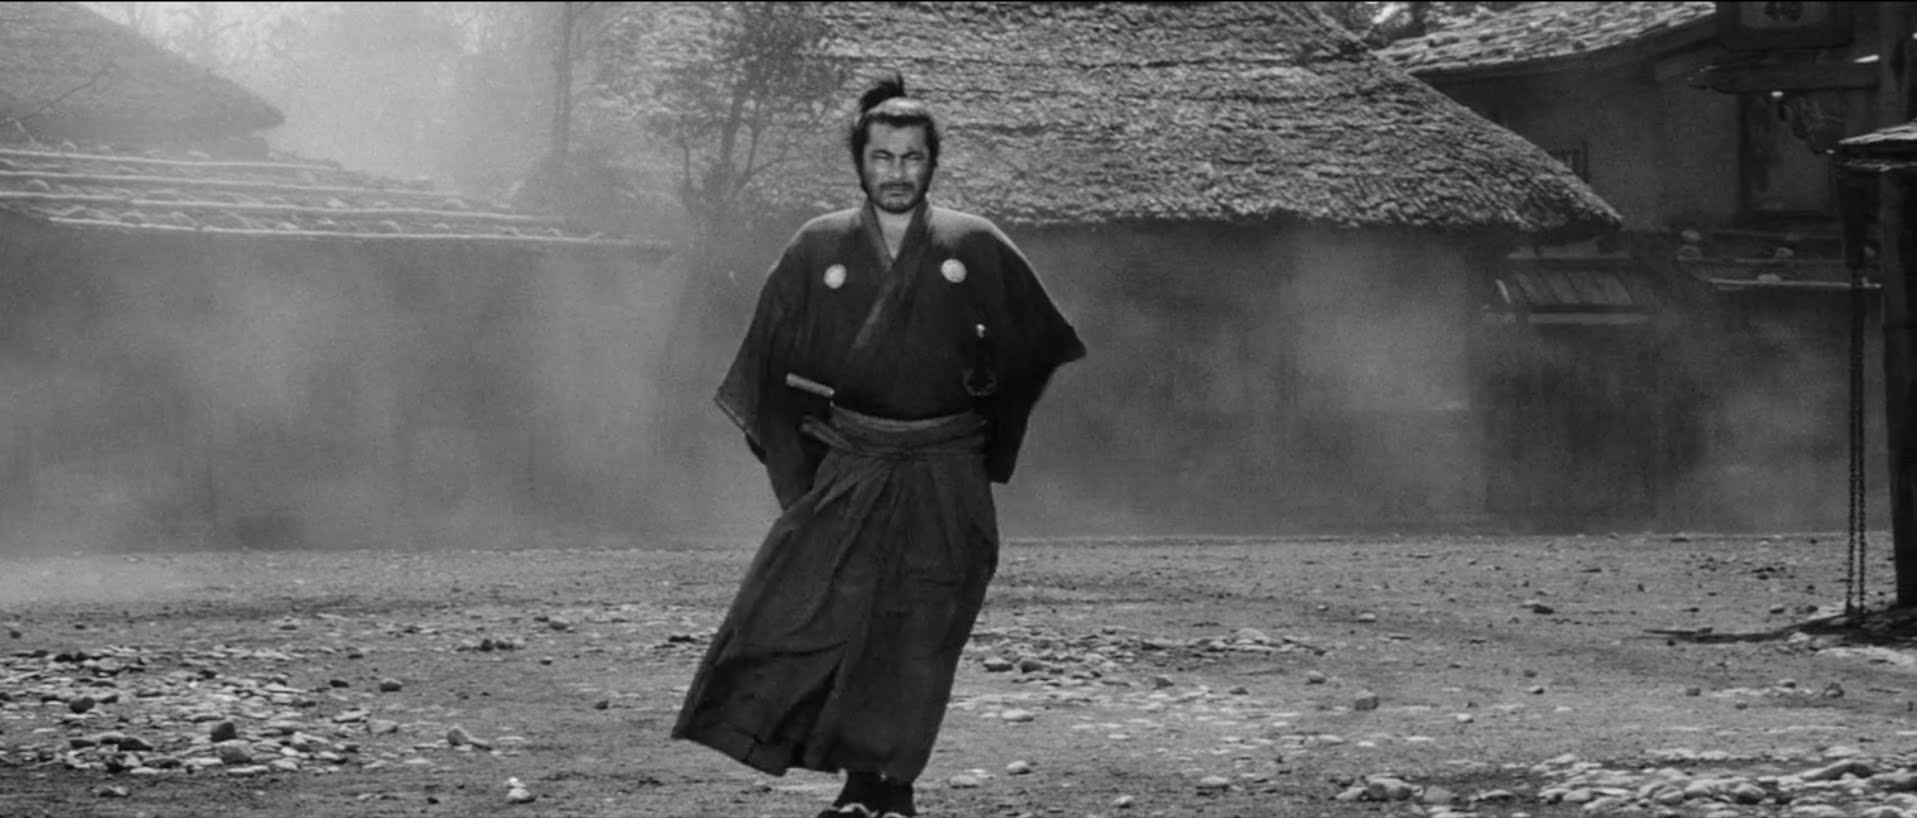 master filmaker akira kurosawa The most widely acclaimed talent to come to prominence in the postwar period was akira kurosawa he had made several features during the war which showed kurosawa to be a virtuosic, emotionally intense director.